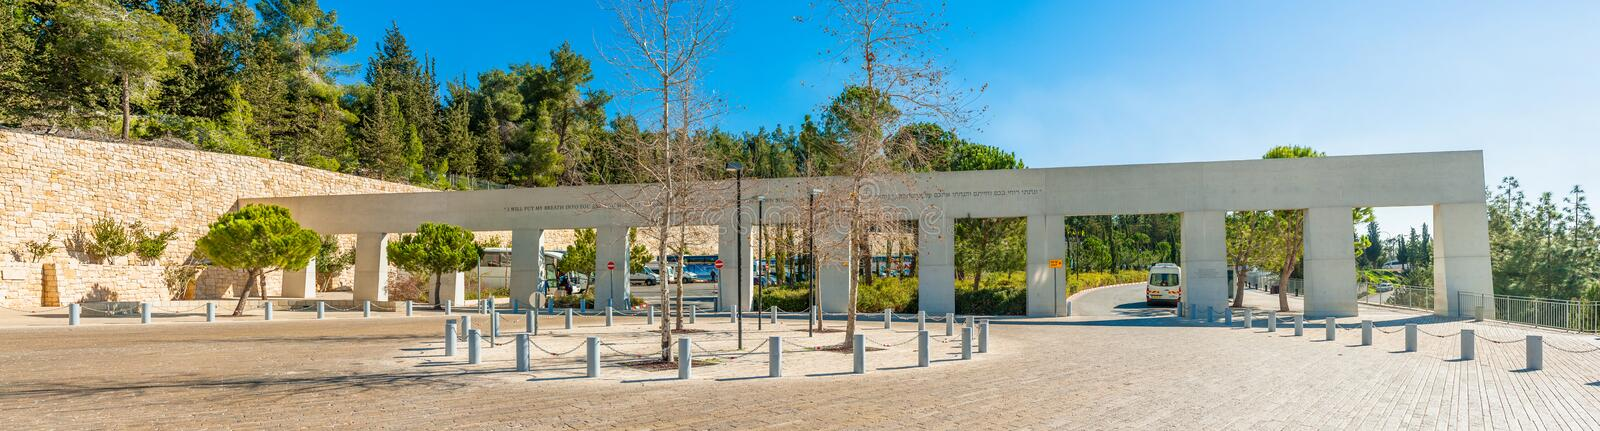 Yad Vashem Memorial. Front gate to the Yad Vashem Memorial in downtown Jerusalem, Israel royalty free stock photography